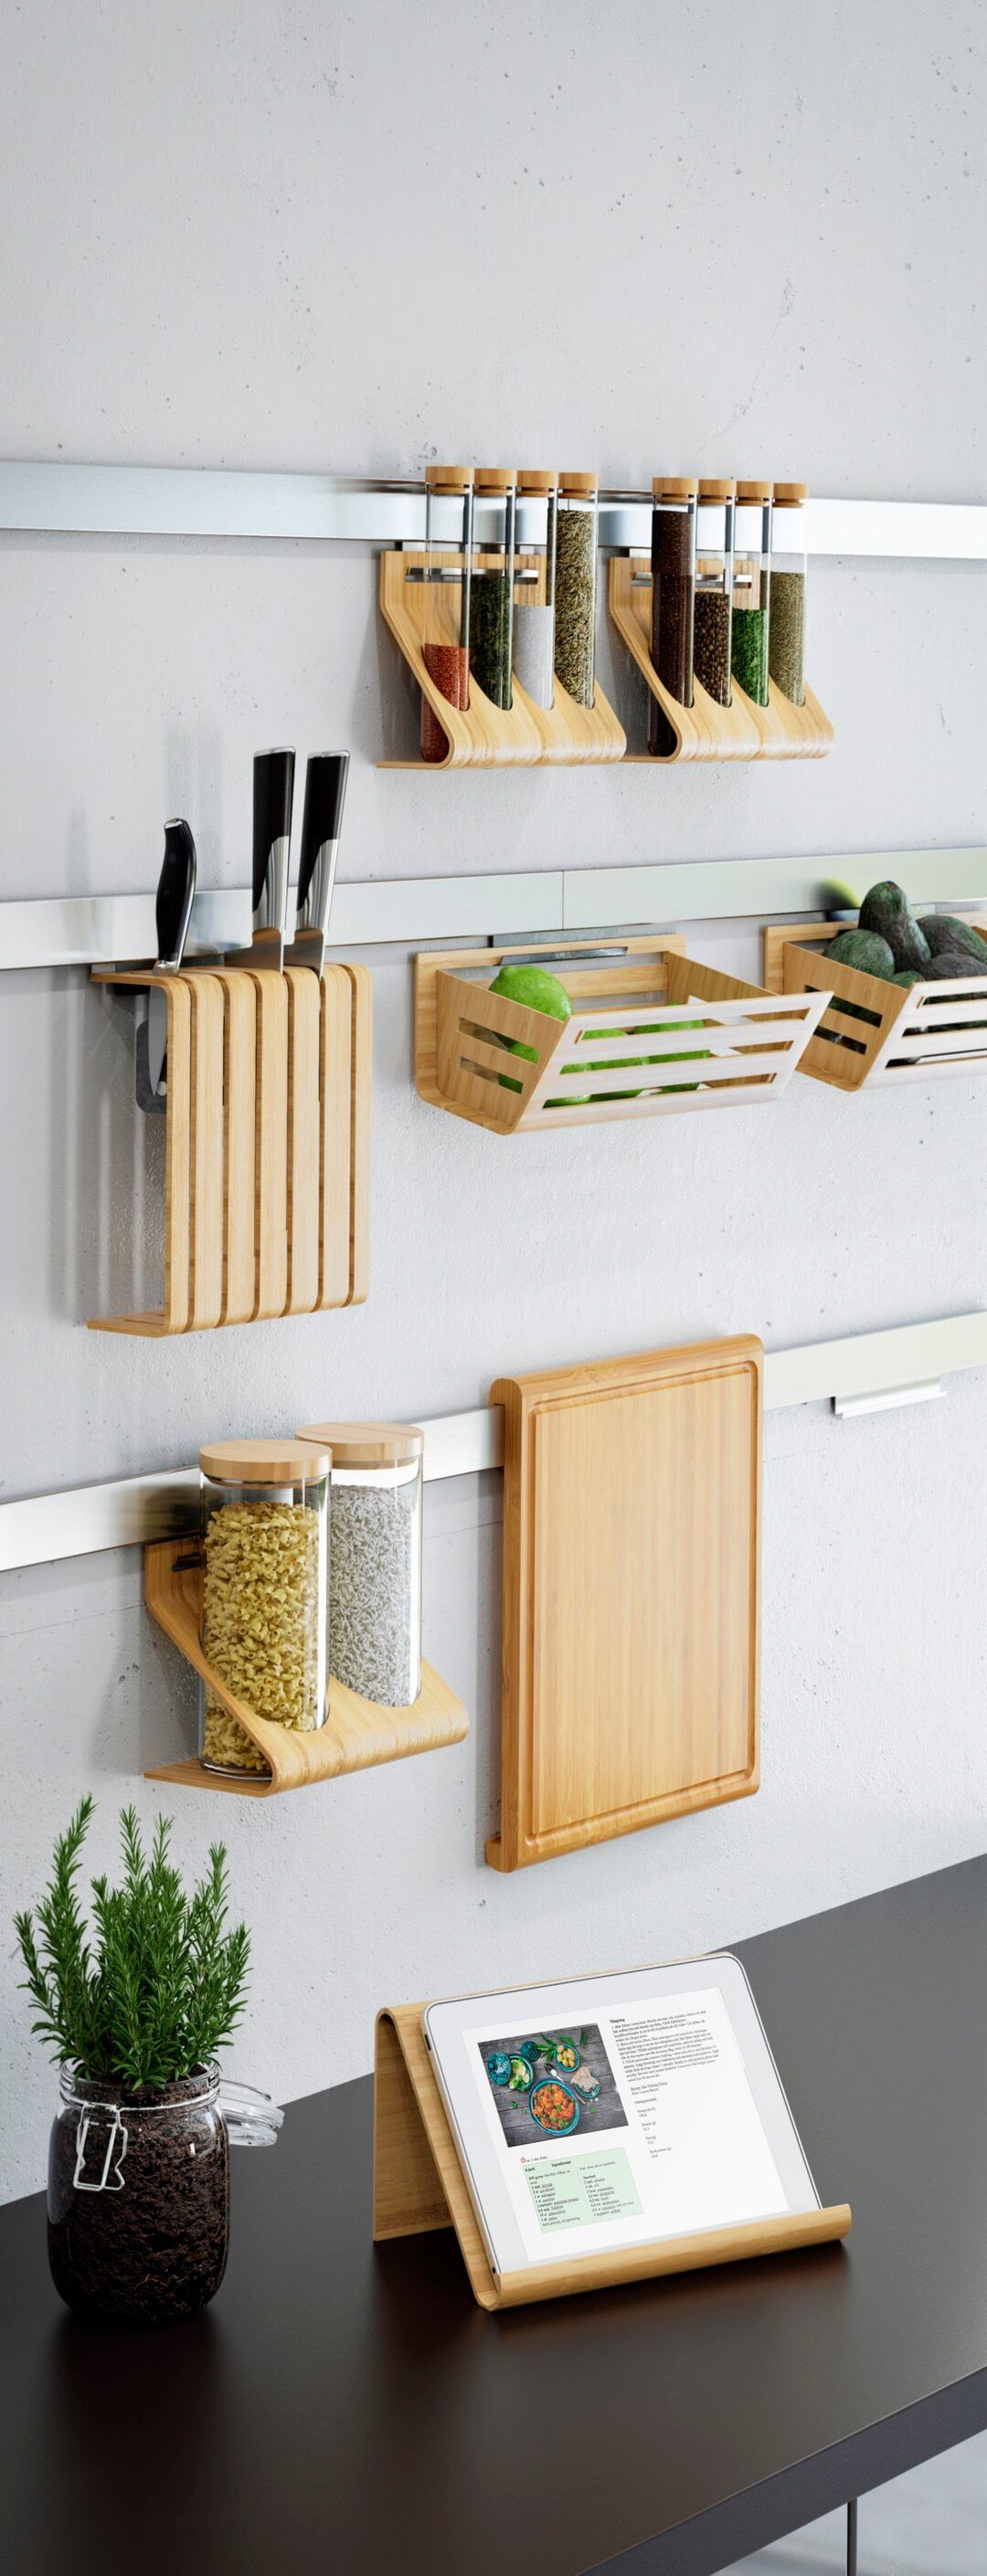 35 Practical Storage Ideas For A Small Kitchen Organization | Wall ...